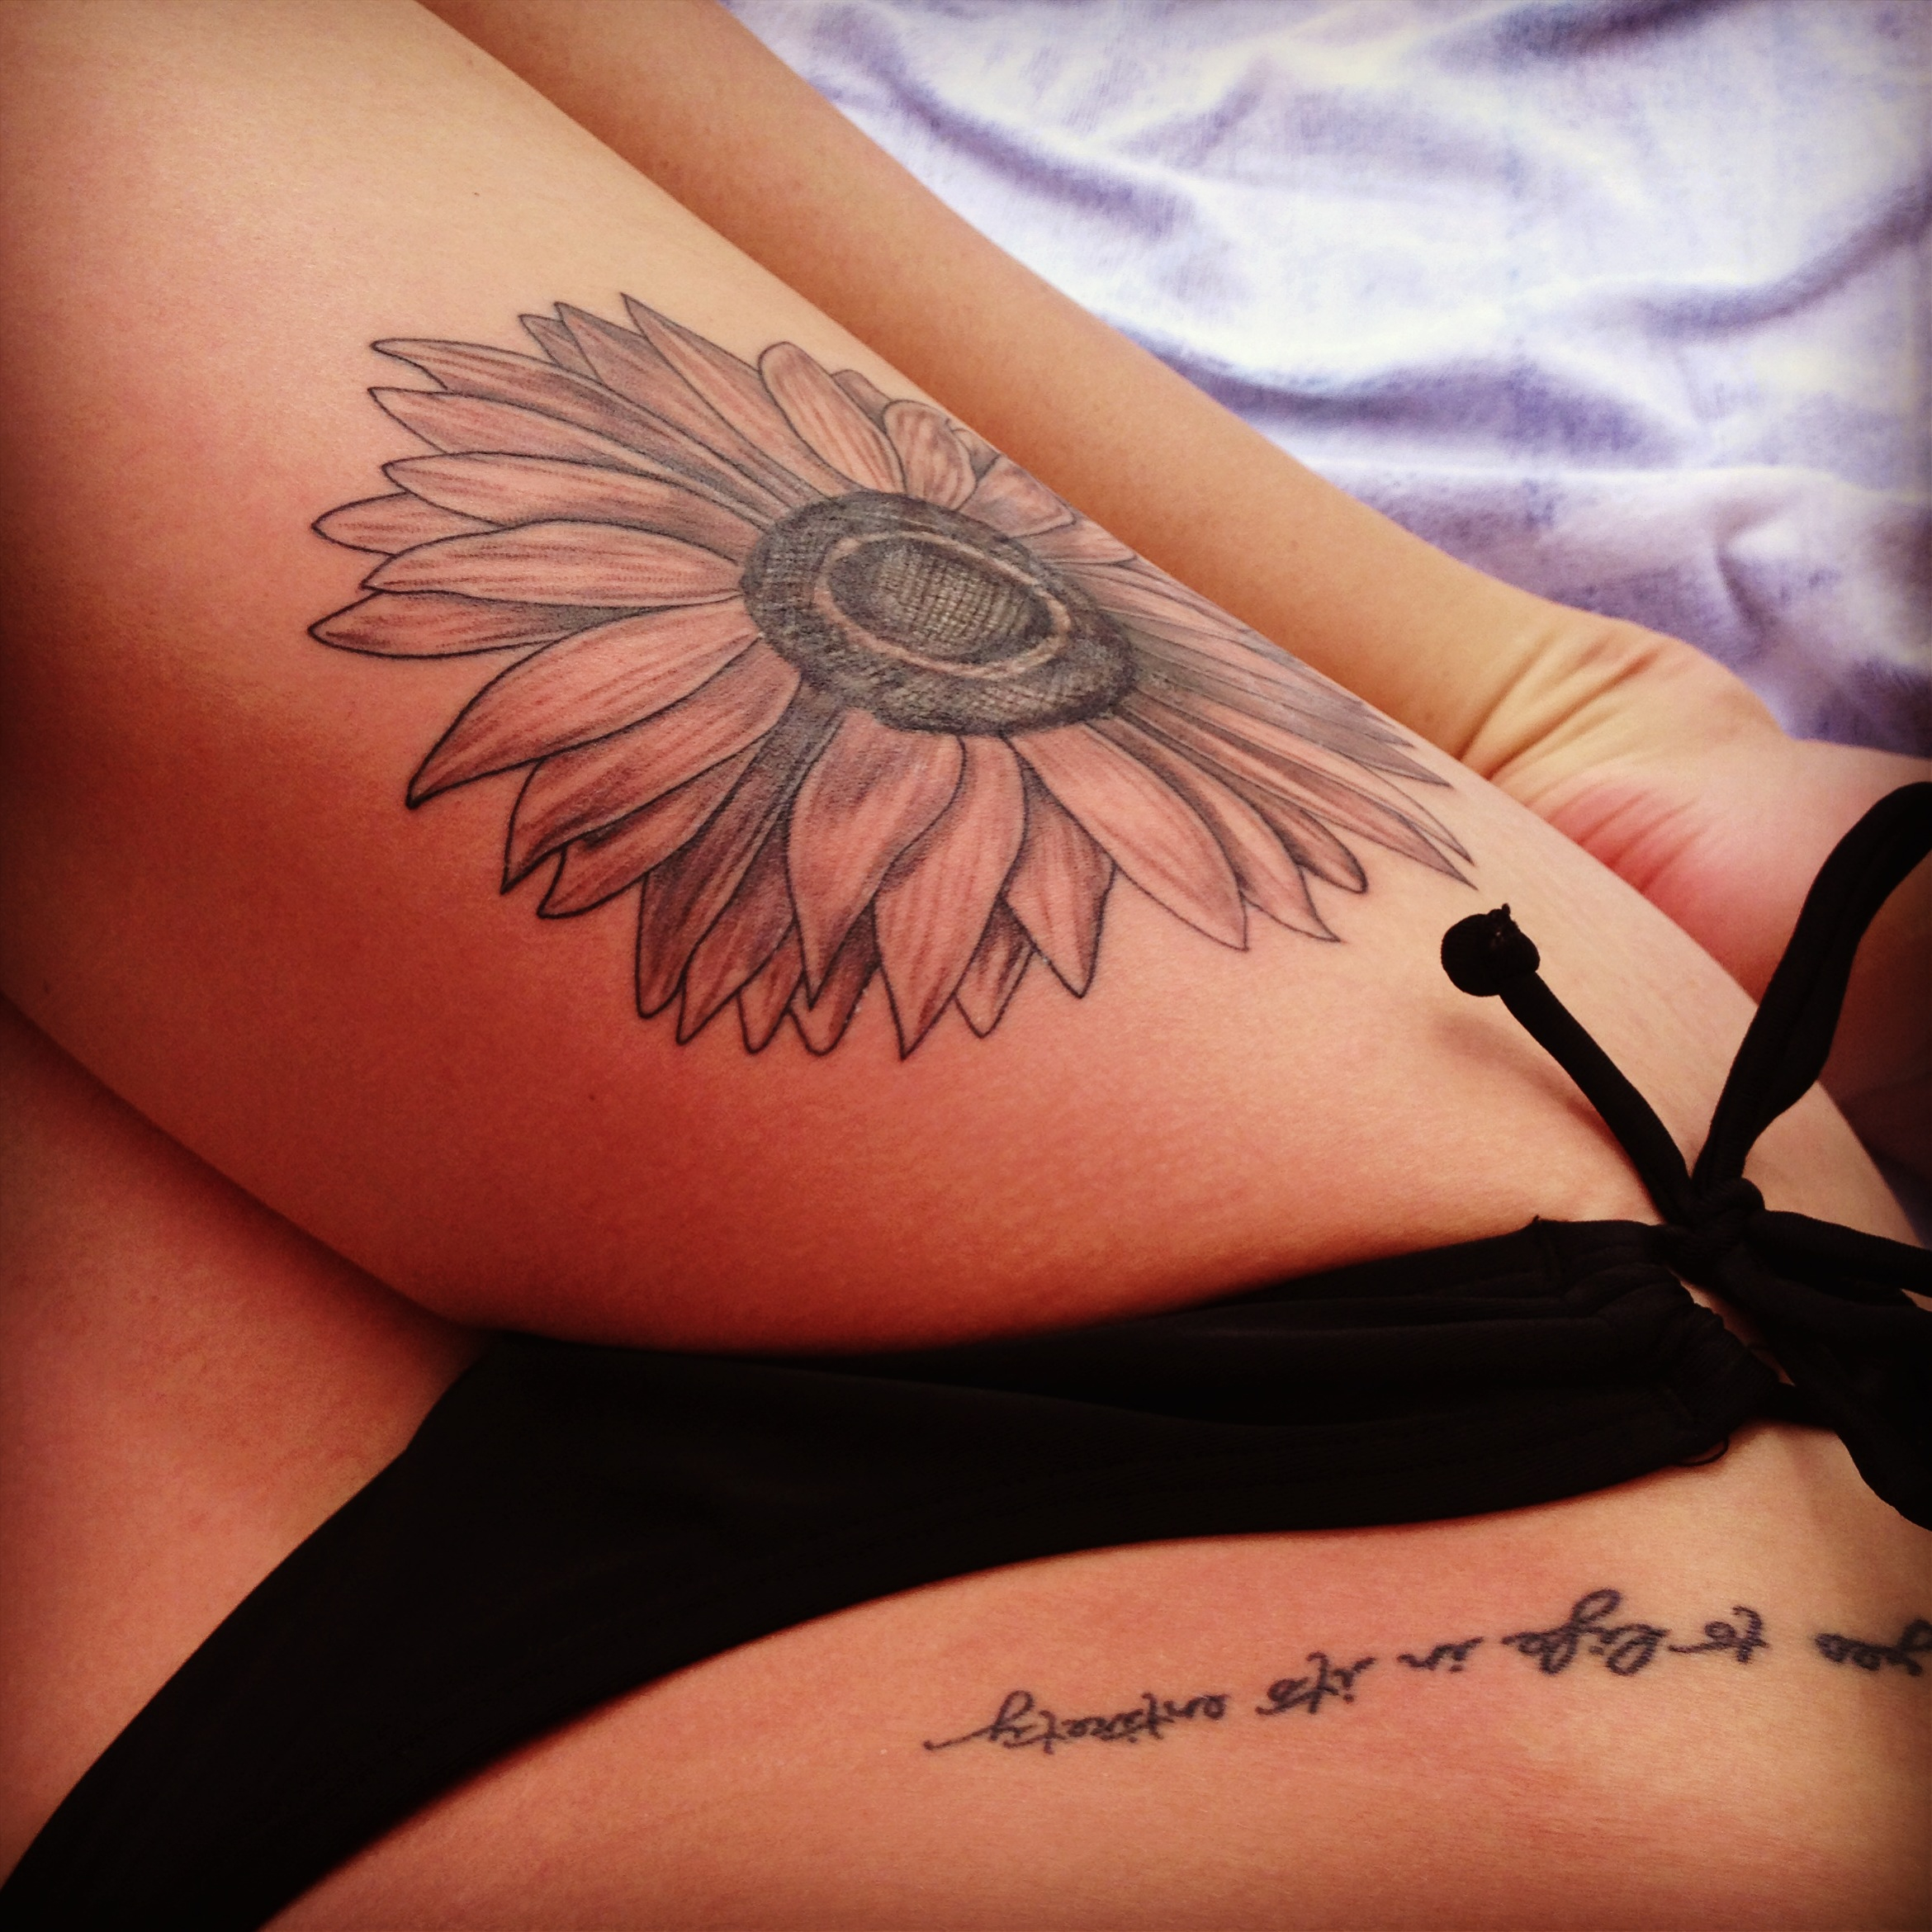 Sunflower tattoos designs ideas and meaning tattoos for you for Tattoo ideas and meanings